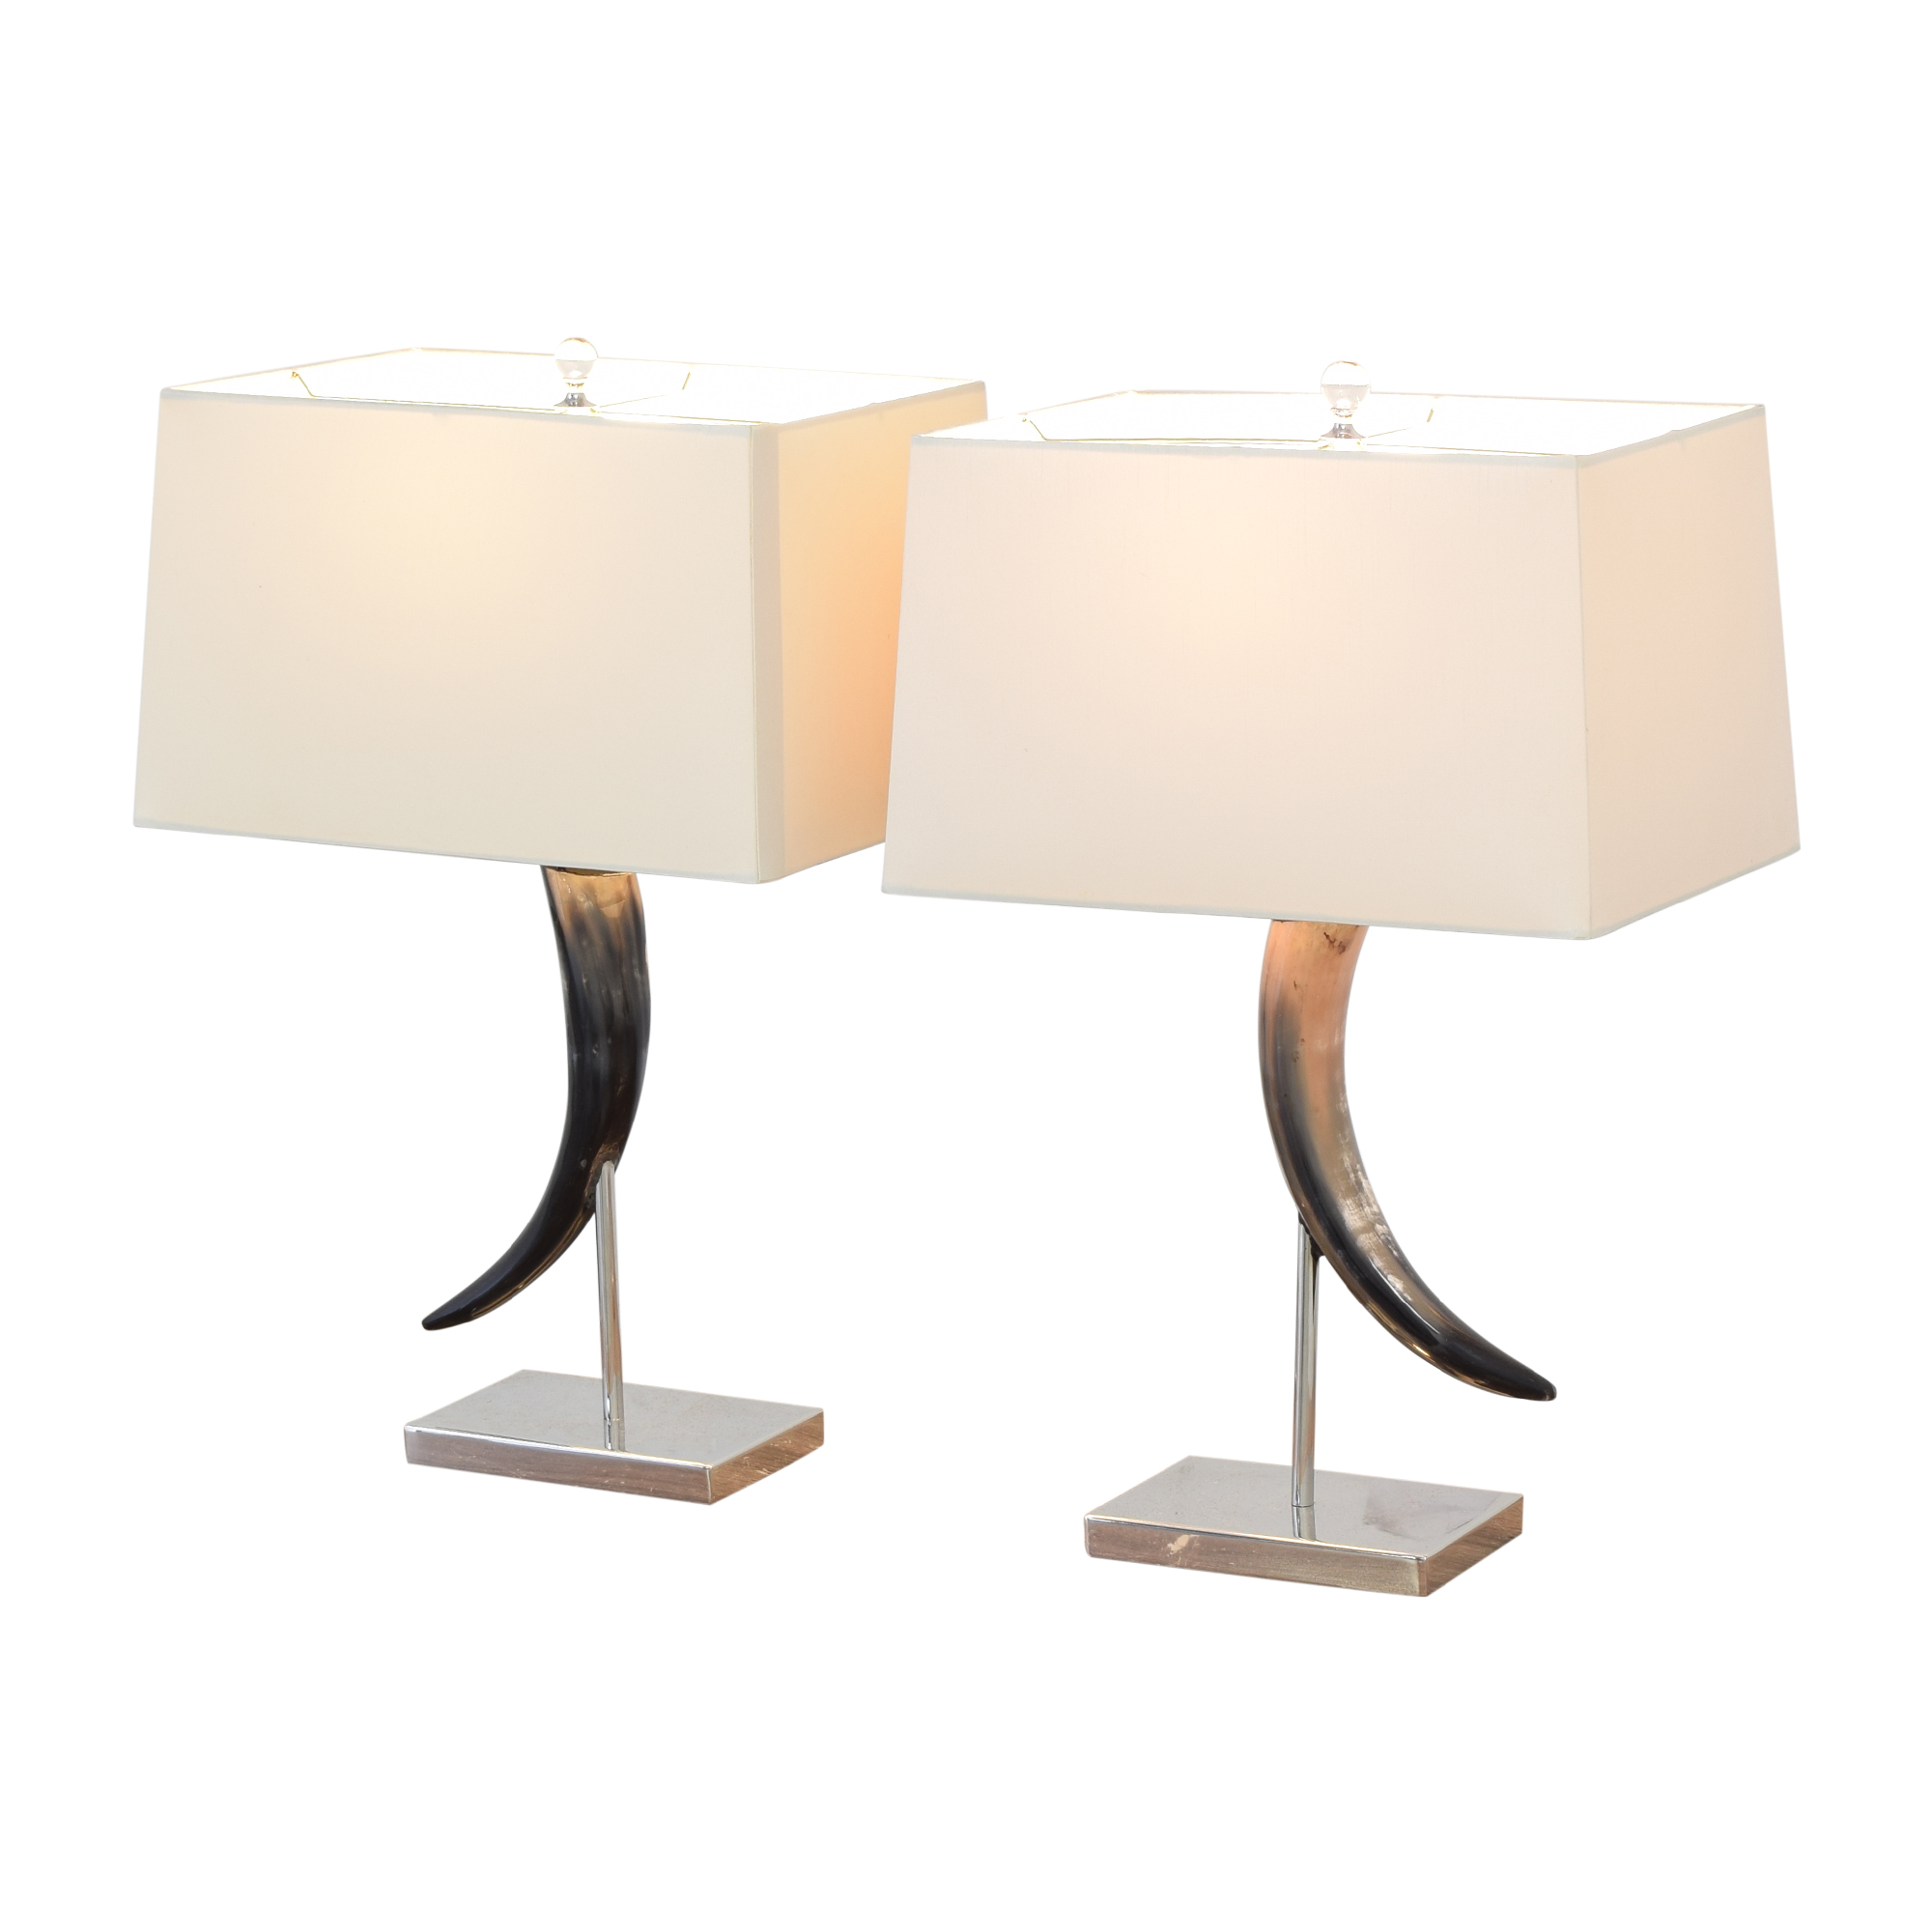 Horn Table Lamps used